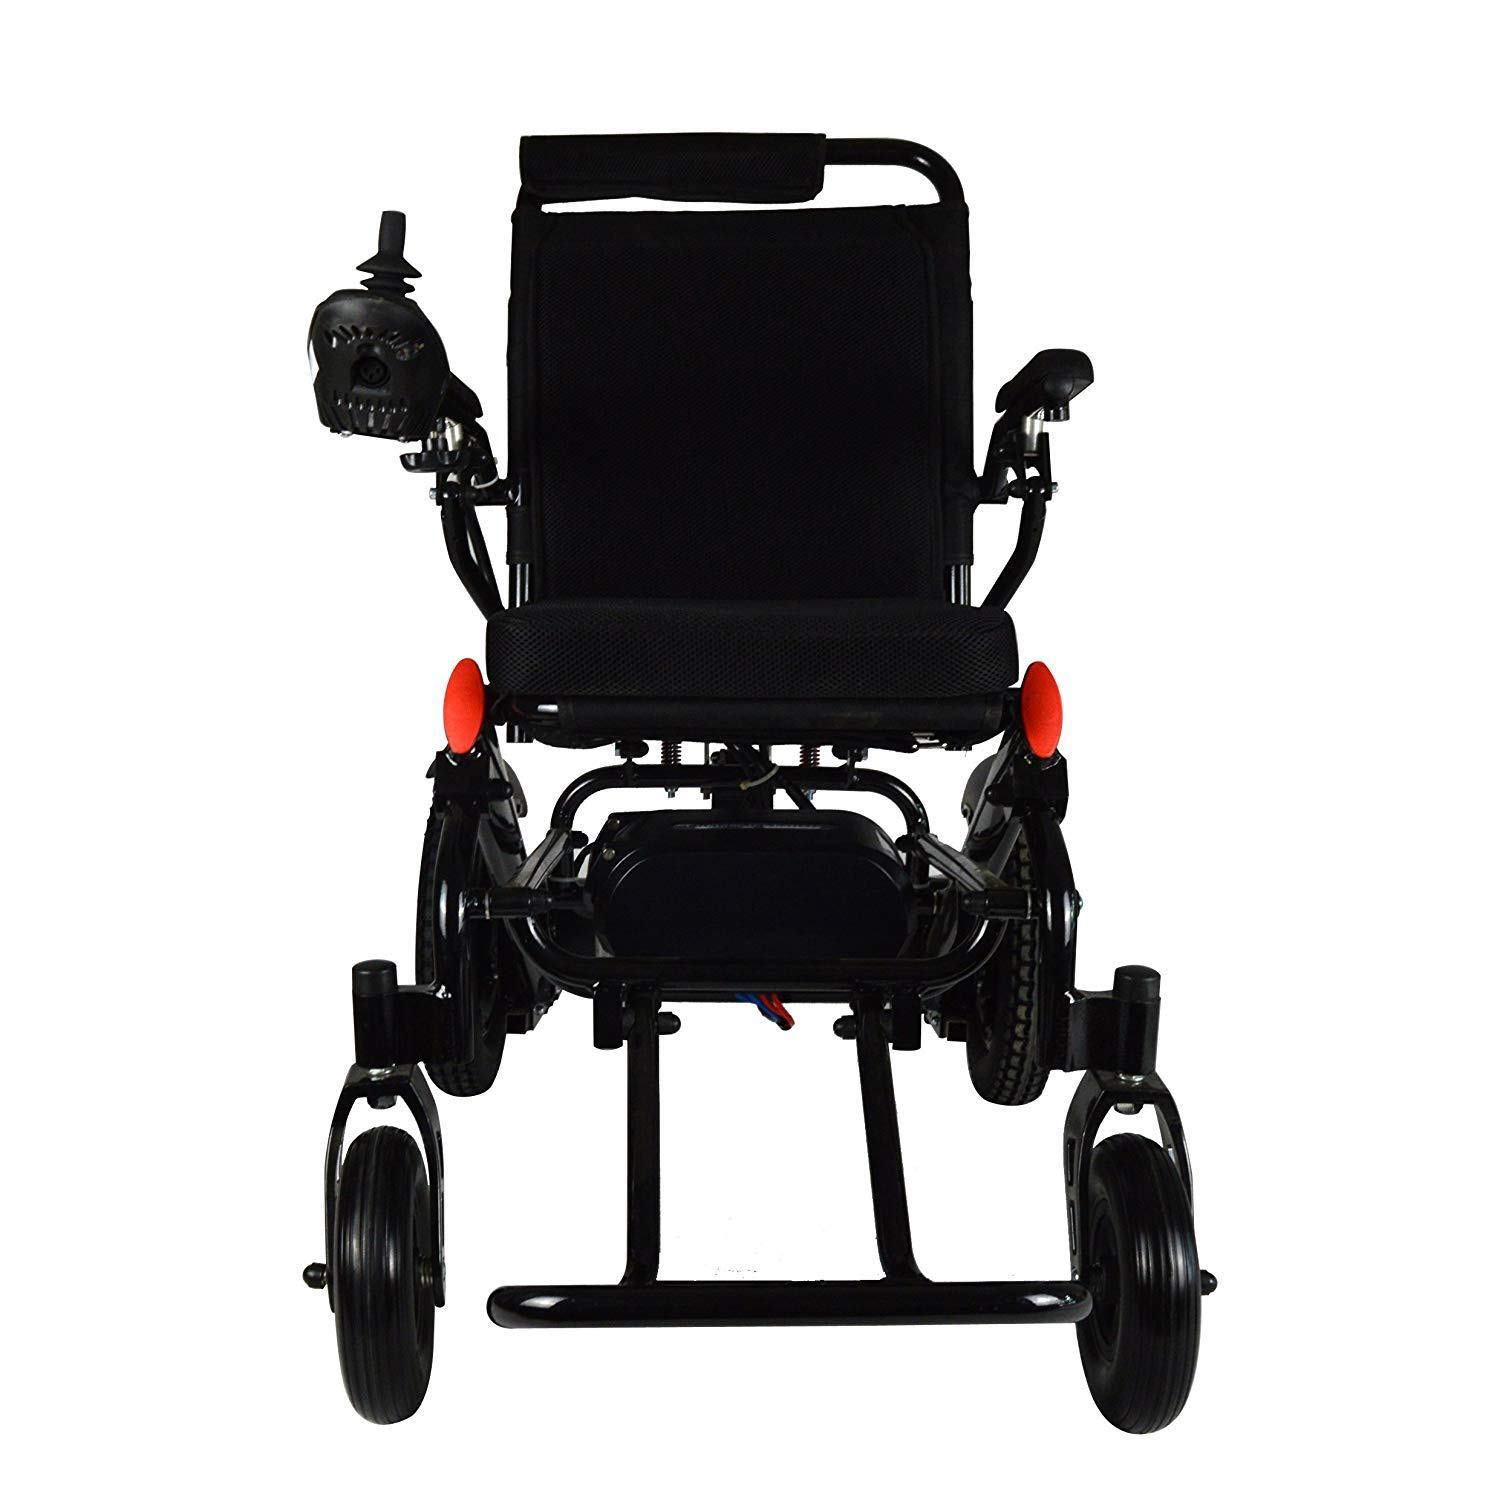 Amazon.com: 2019 New Remote Control Electric Wheelchairs ...